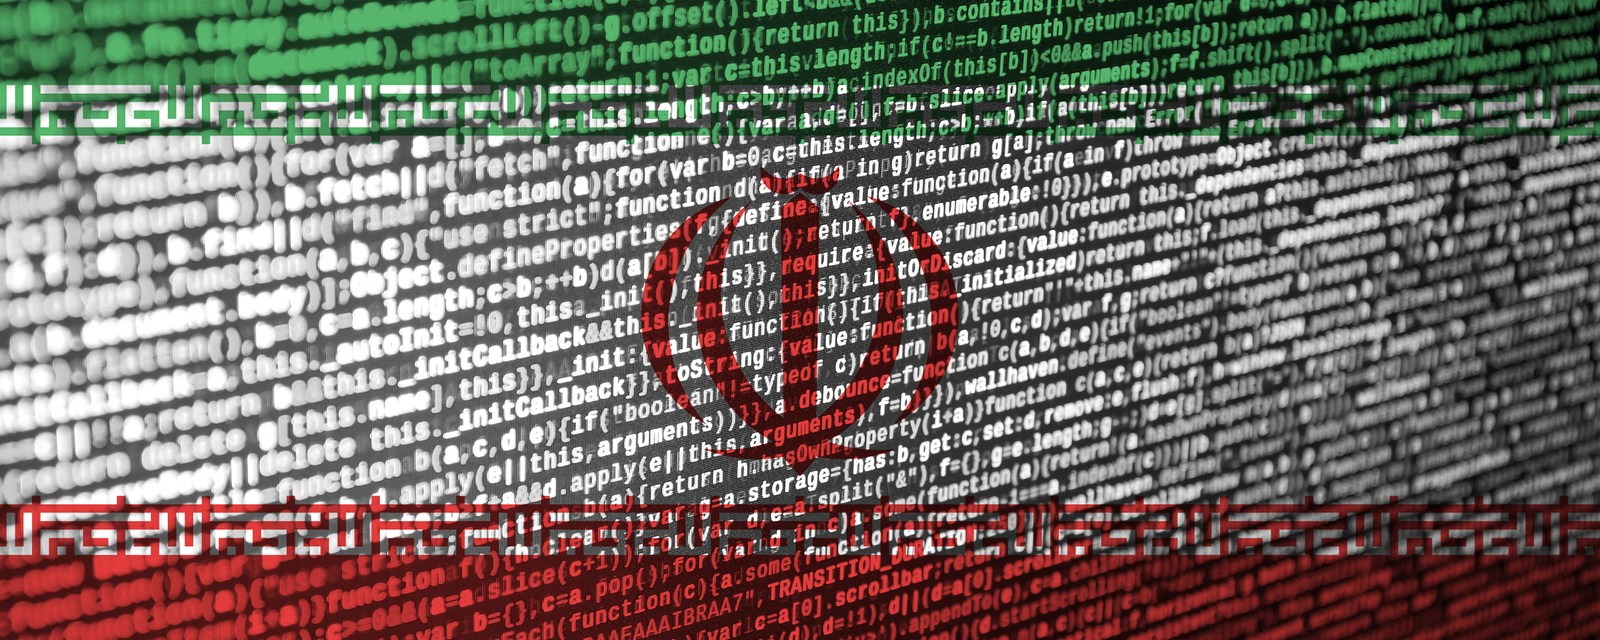 Iran Flag Is Depicted On The Screen With The Program Code